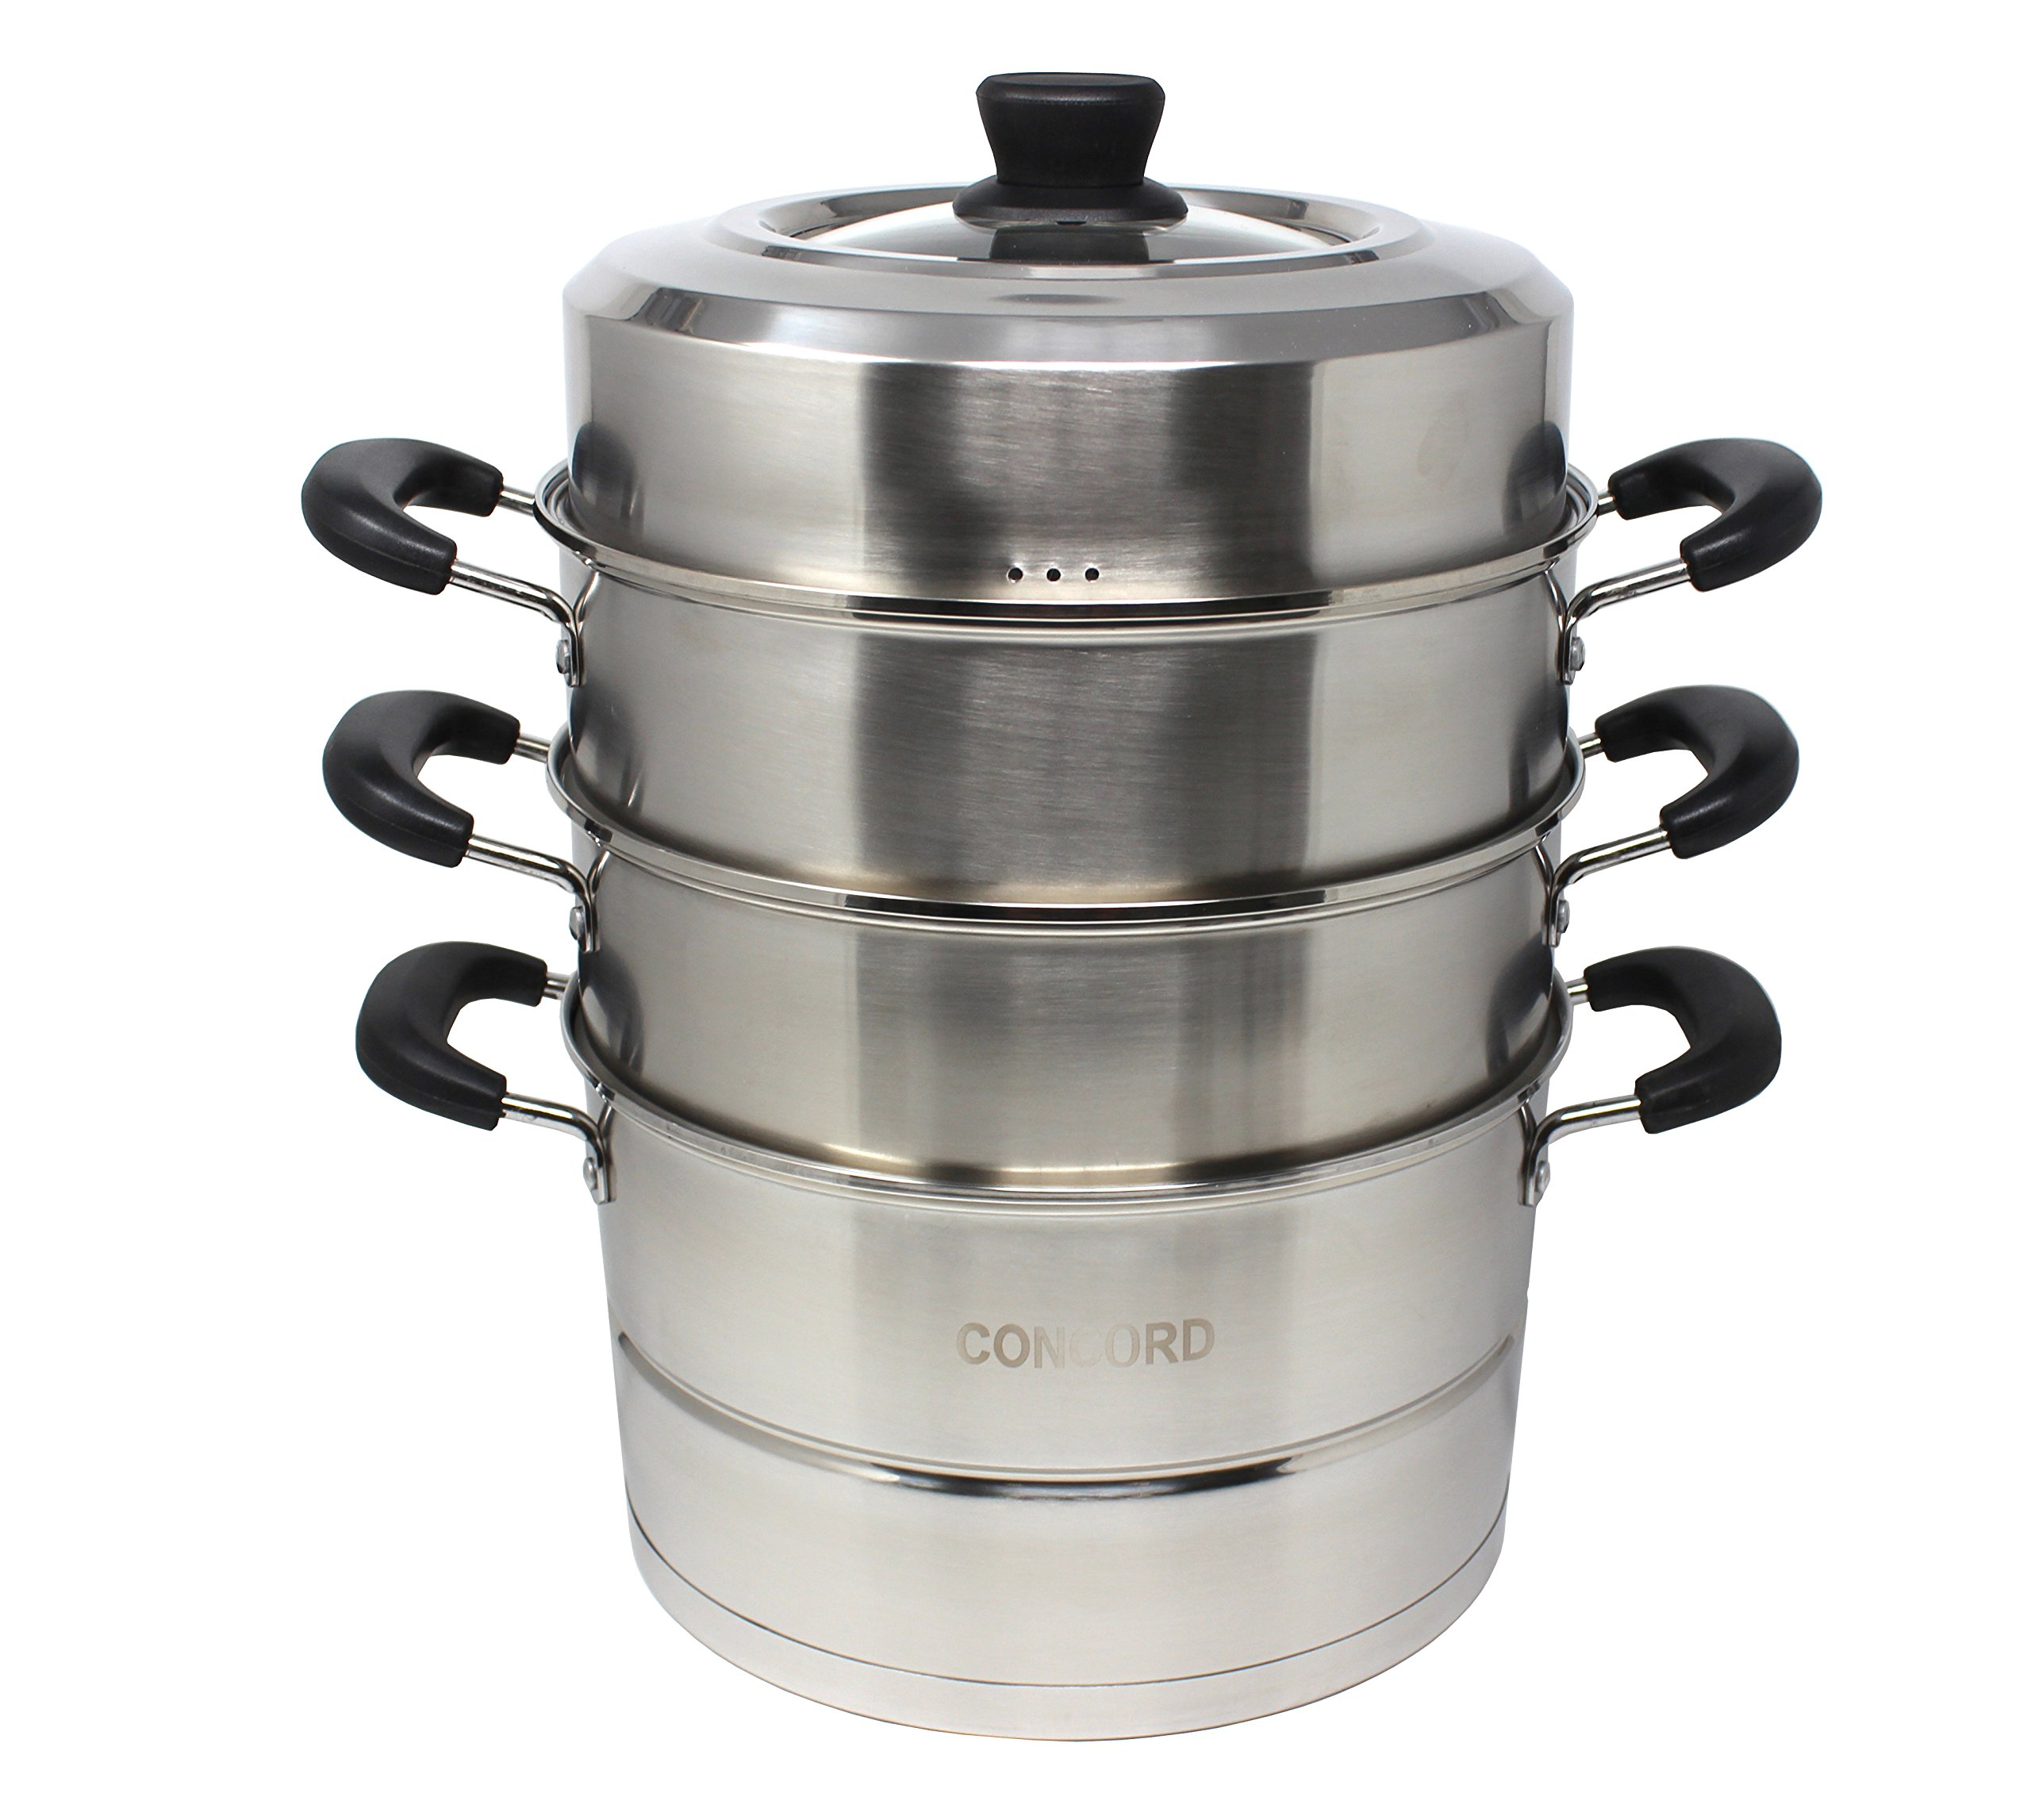 CONCORD 3 Tier Premium Stainless Steel Steamer Set (30 CM)